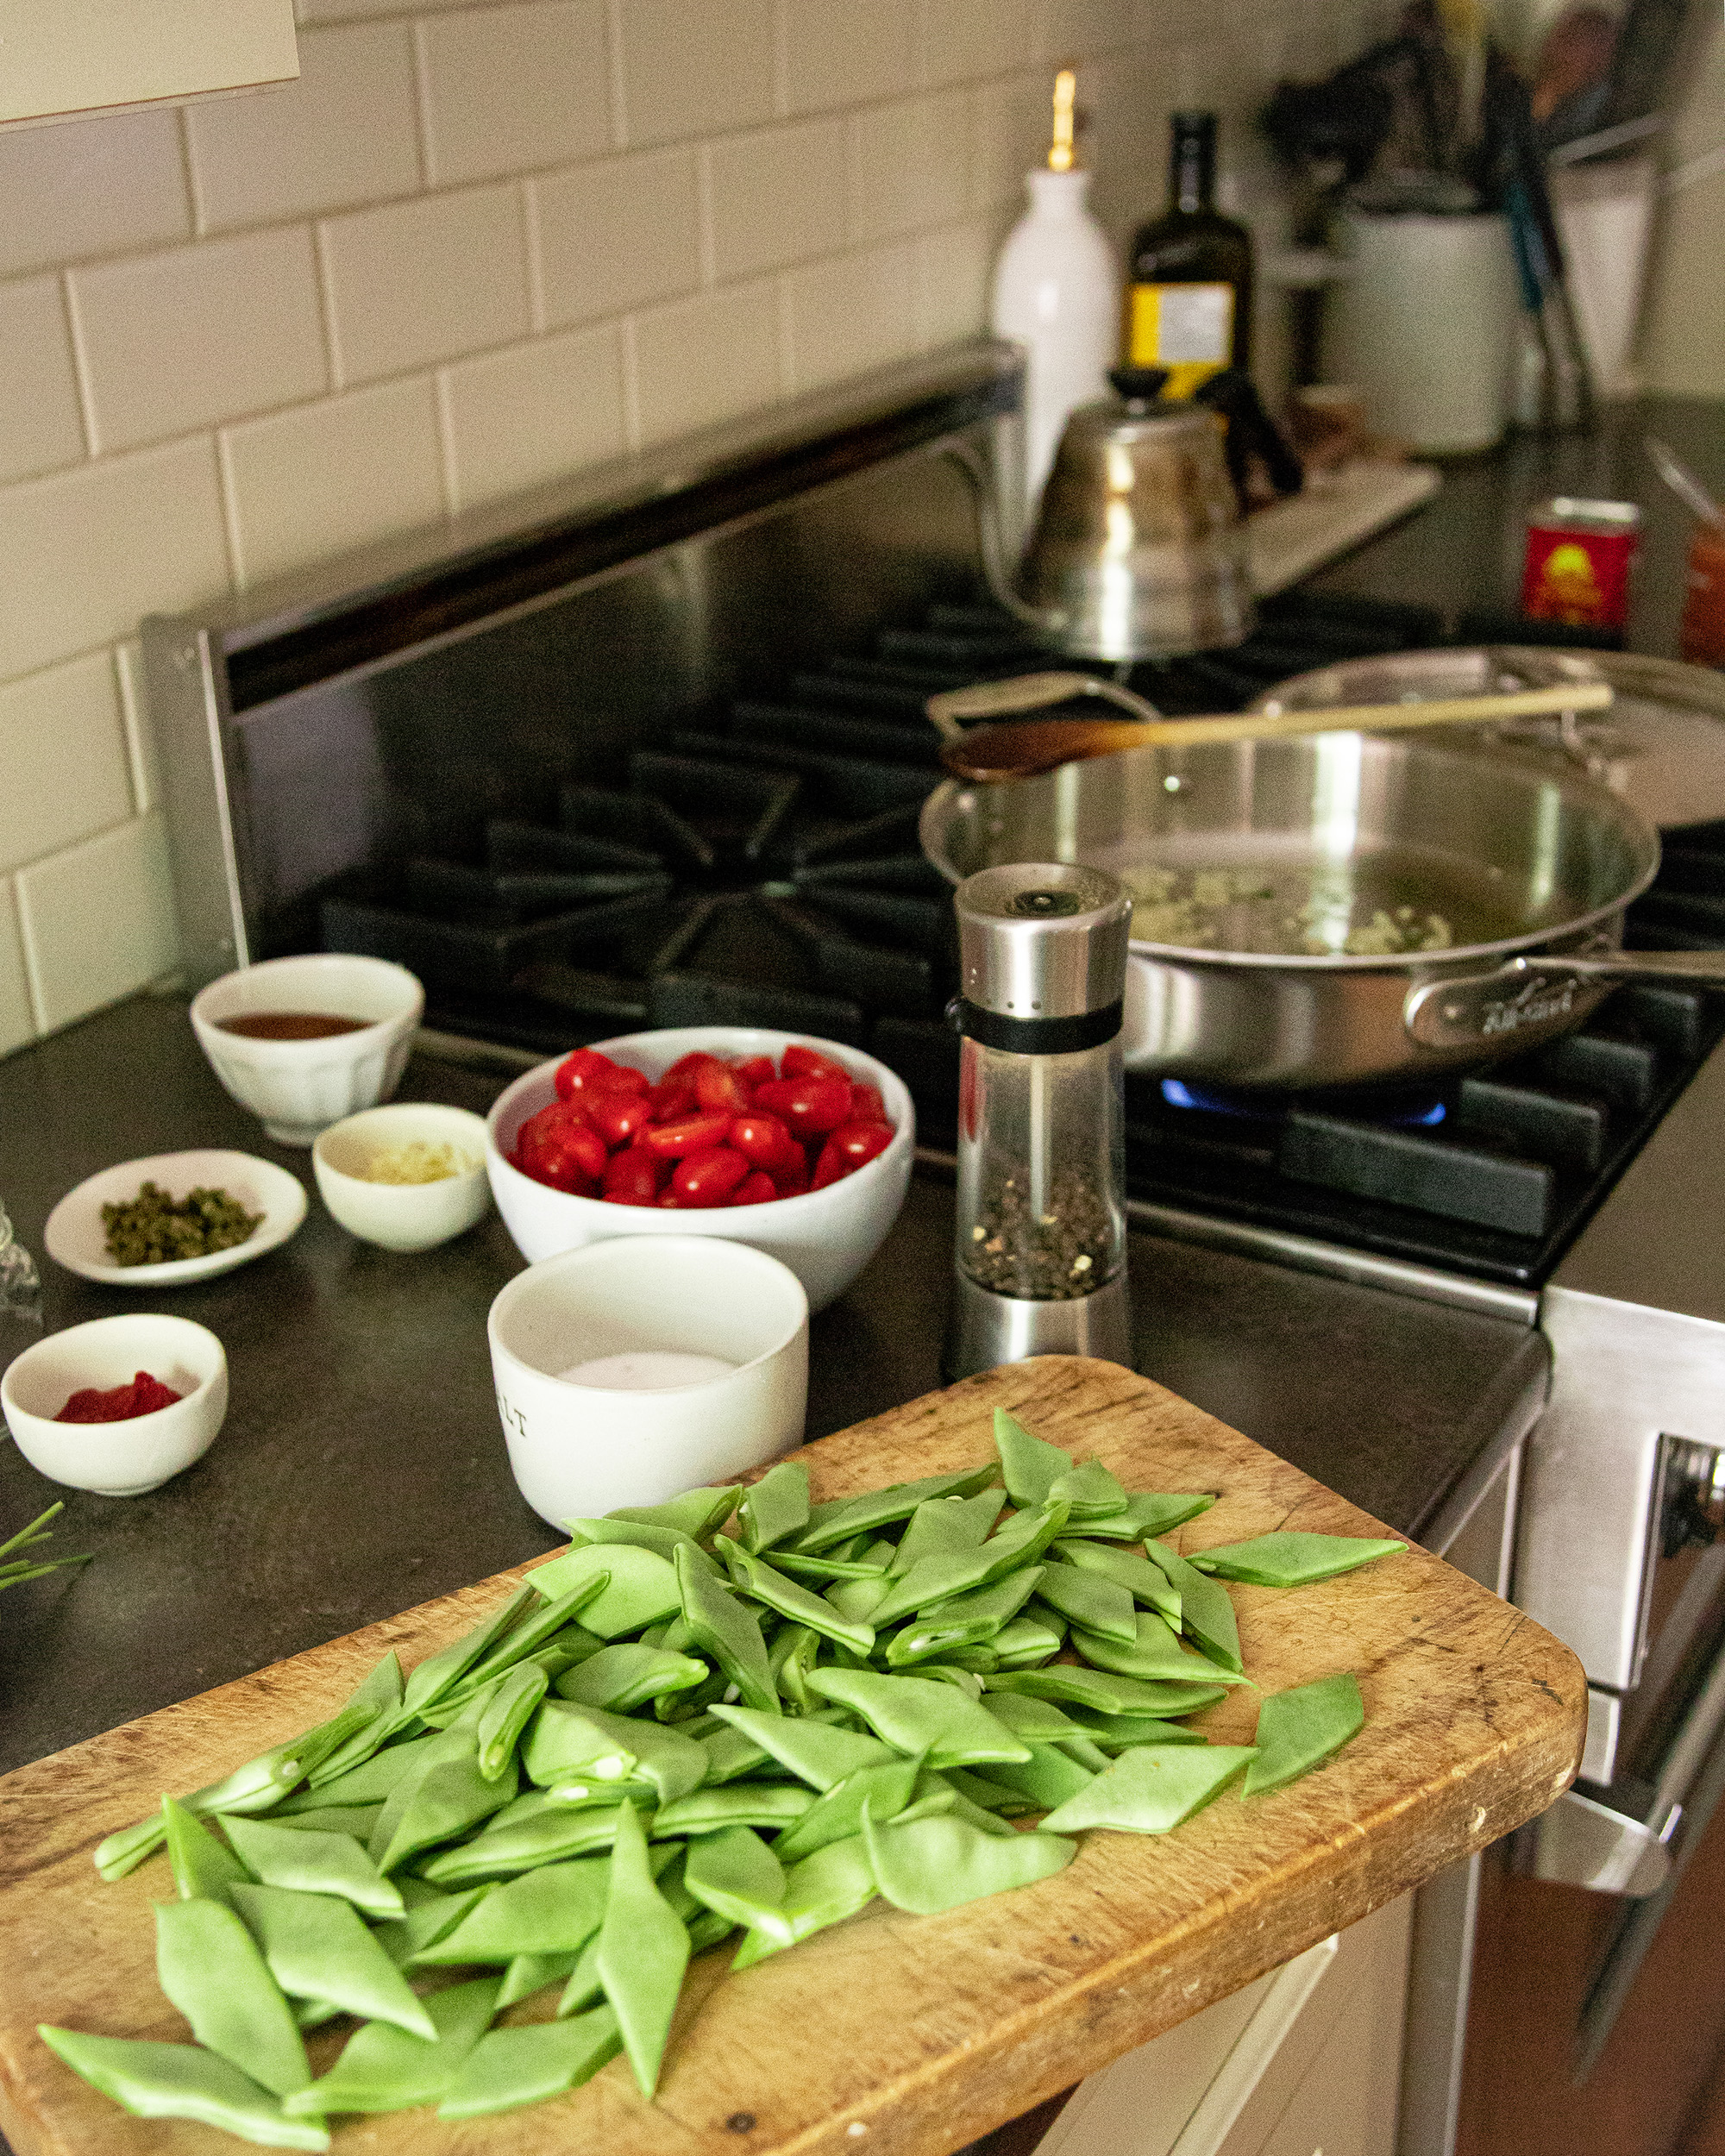 A kitchen scene featuring a gas stove and prepped ingredients on a nearby counter.